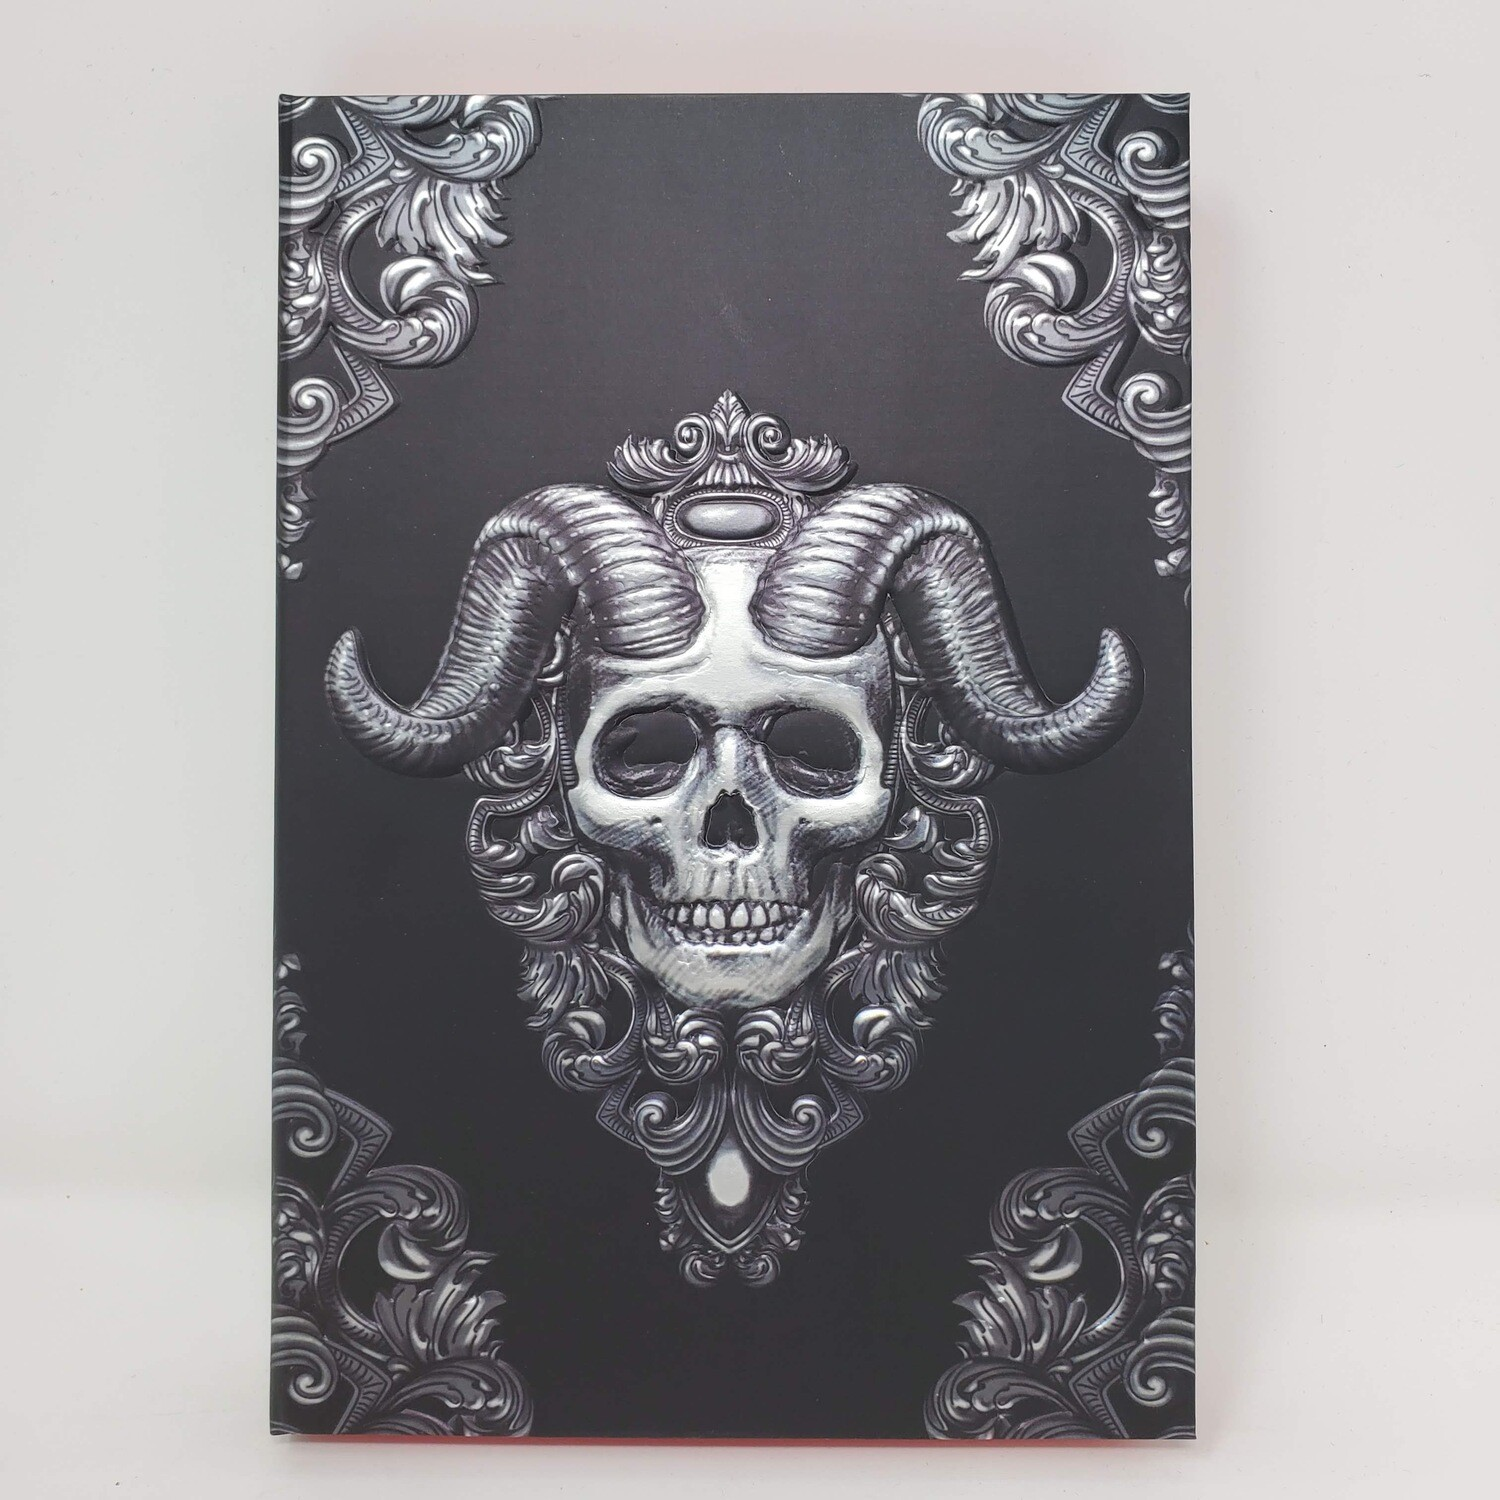 DEMON SKULL JOURNAL